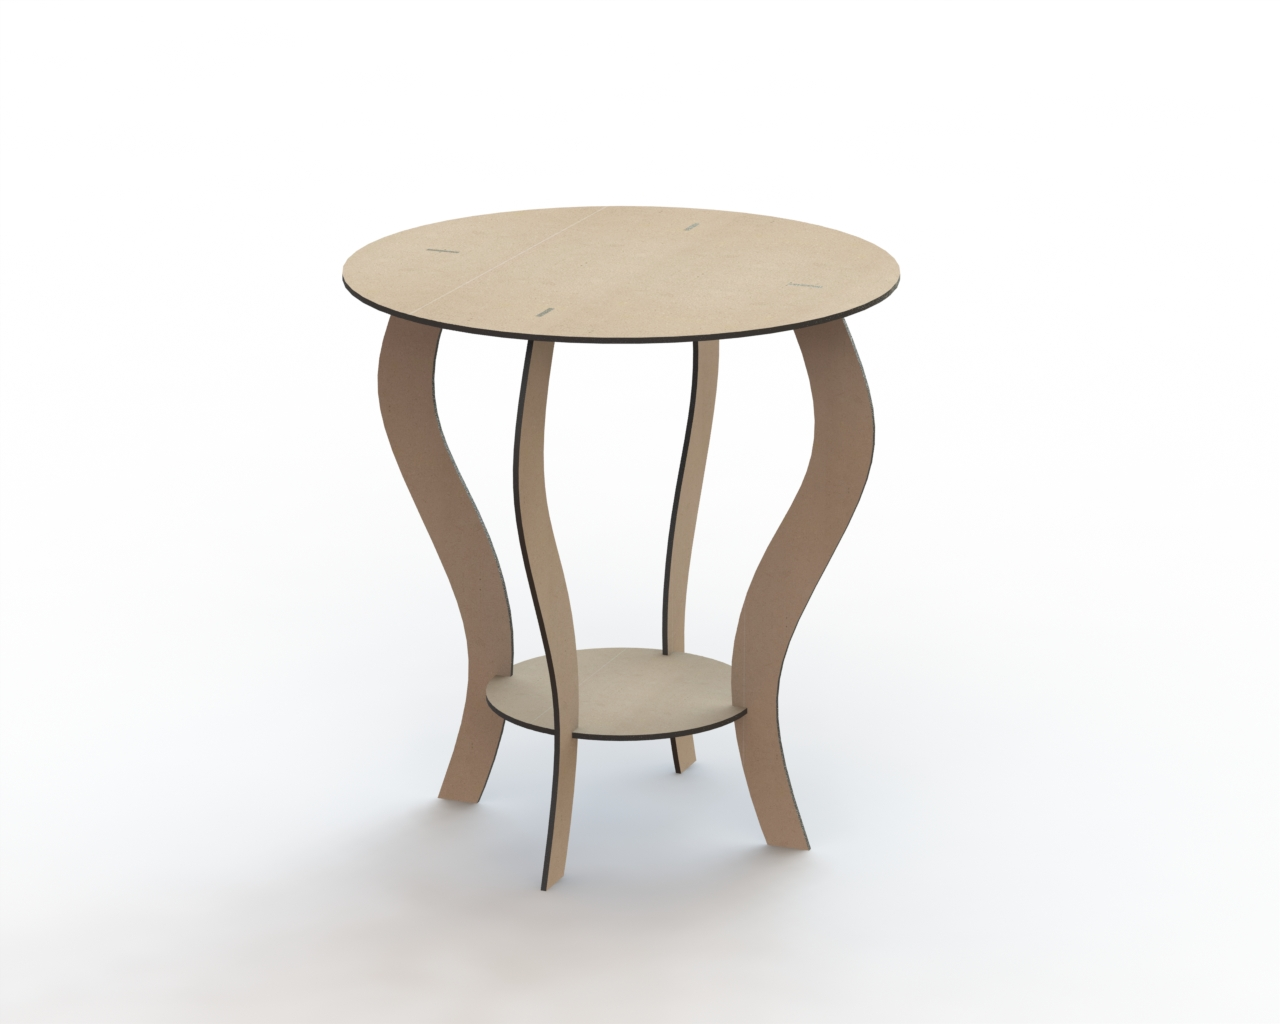 Round Table 650 Mm Free DXF File